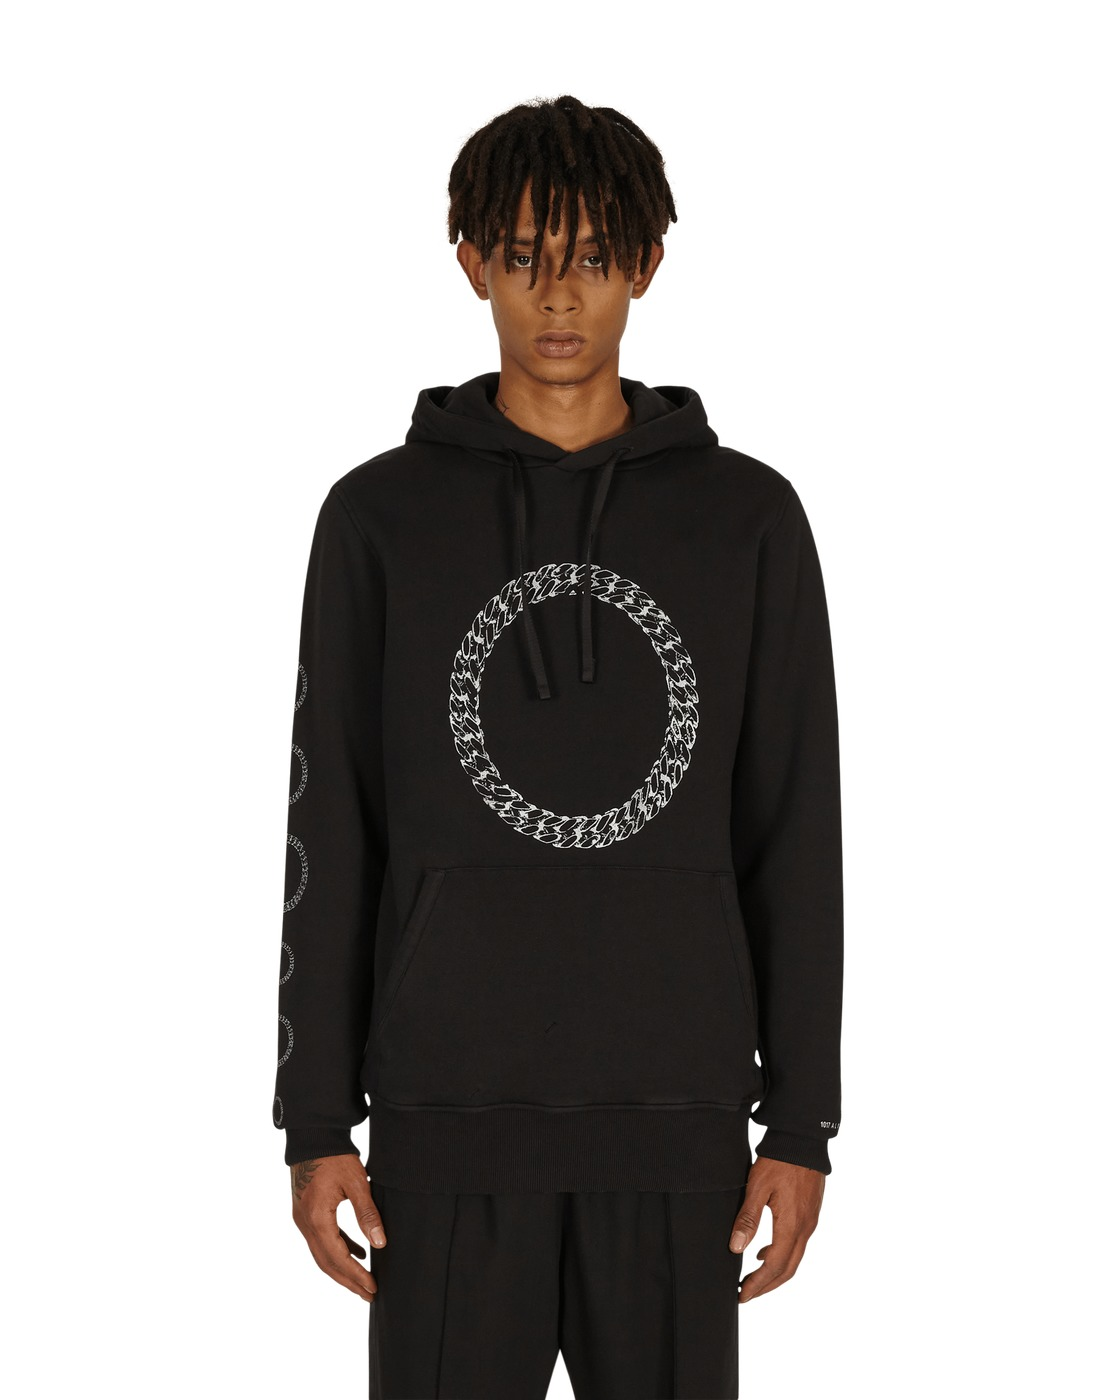 Photo: 1017 Alyx 9sm Cube Chain Graphic Hooded Sweatshirt Black